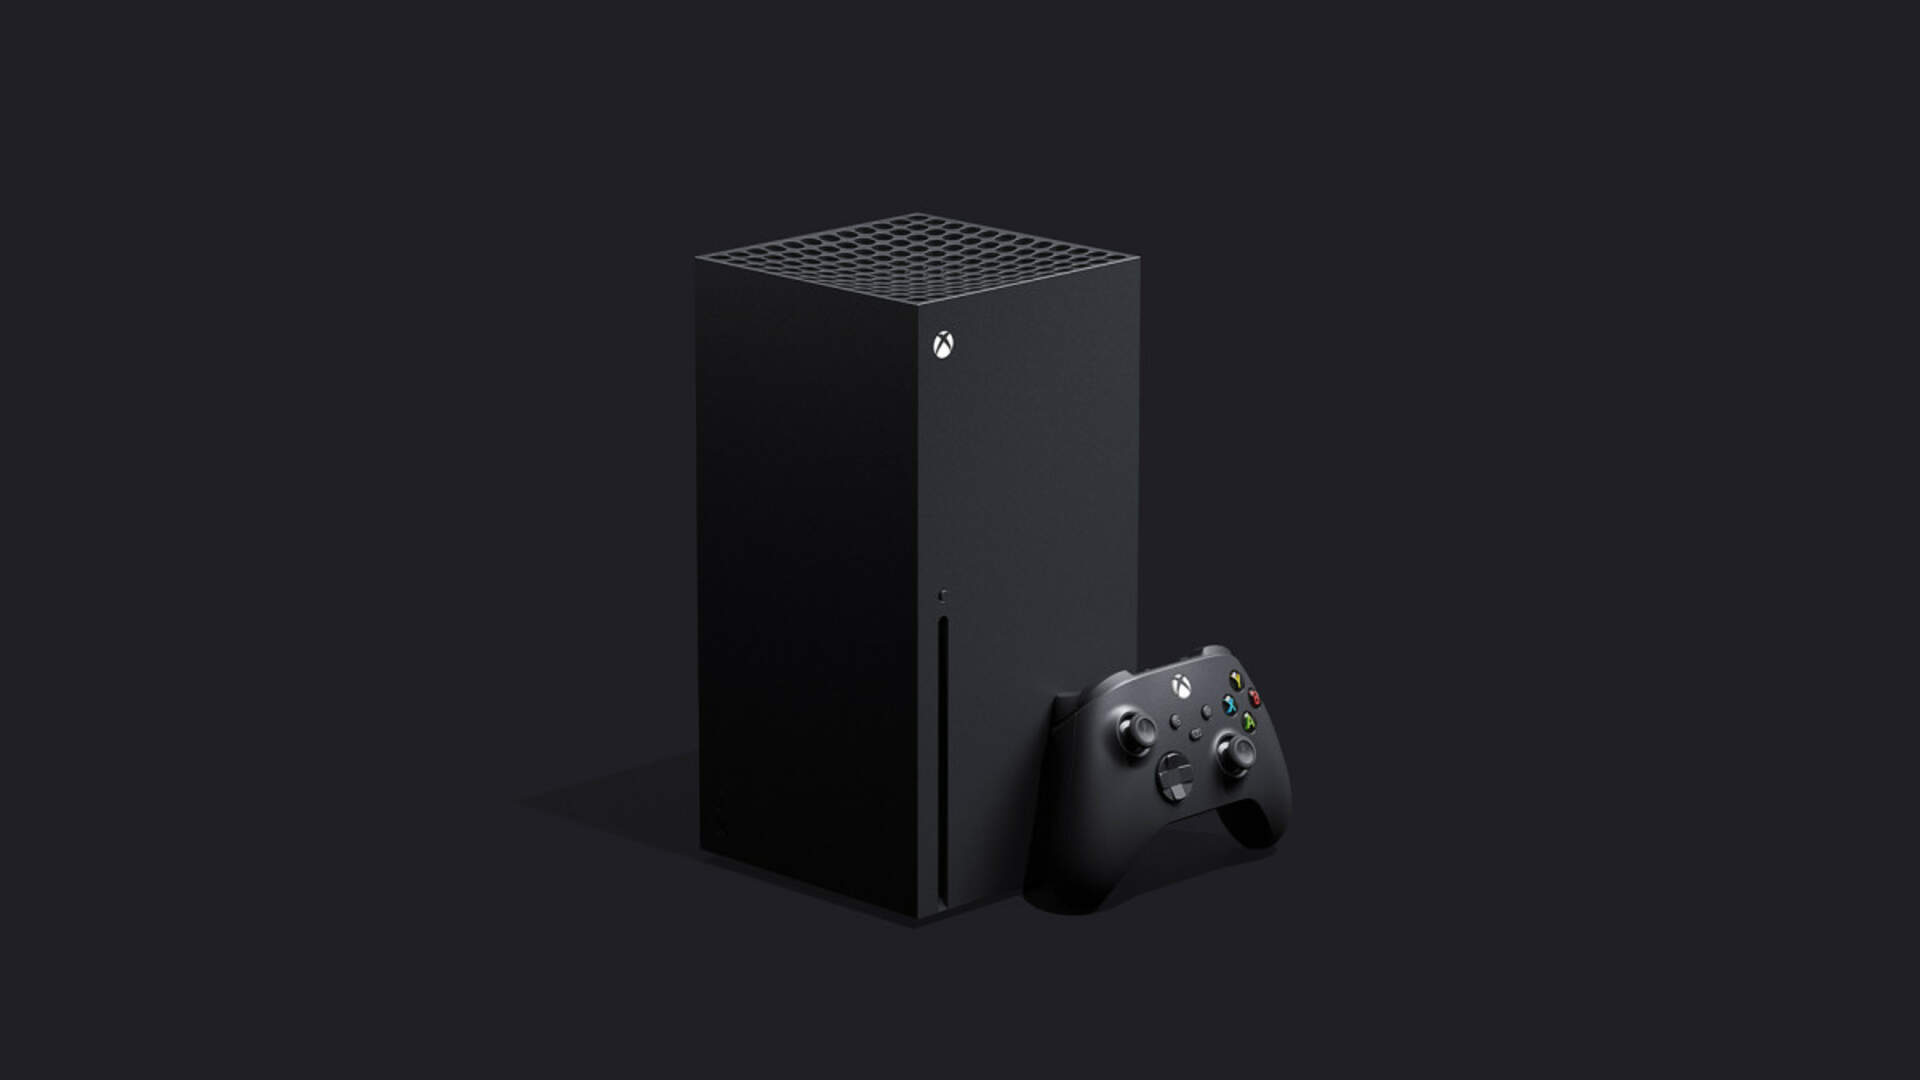 Xbox Series X Has PC Vibes, And That Might Be the Key to Its Success